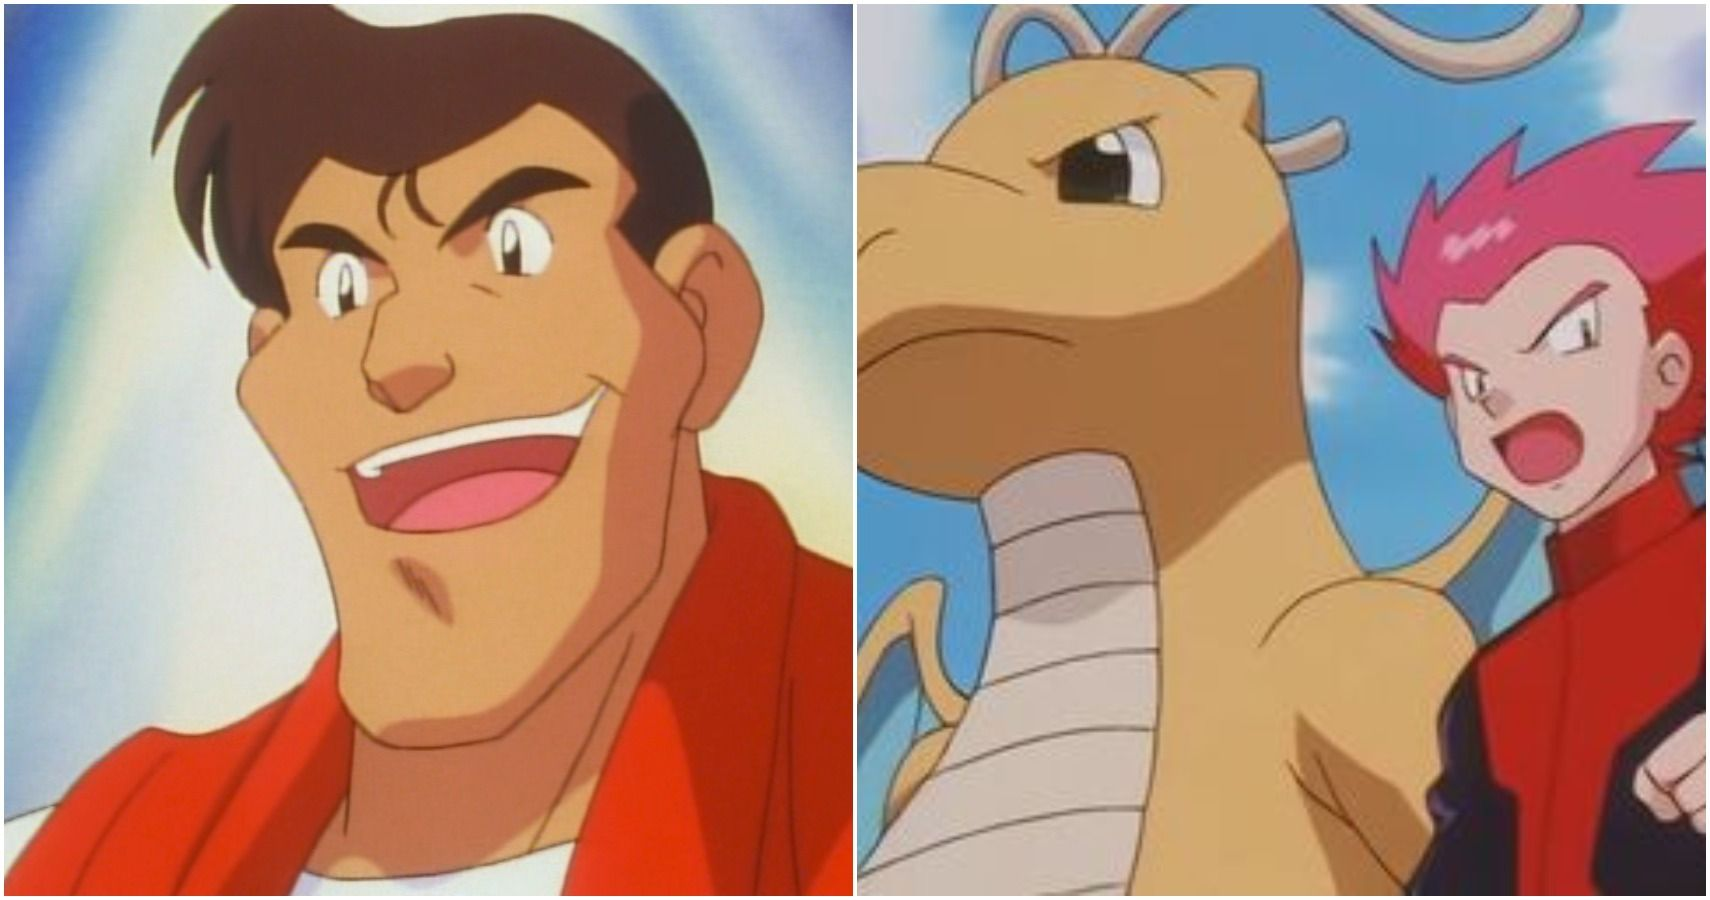 Pokémon: The 5 Most Memorable (& 5 Most Forgettable) Characters of The Day